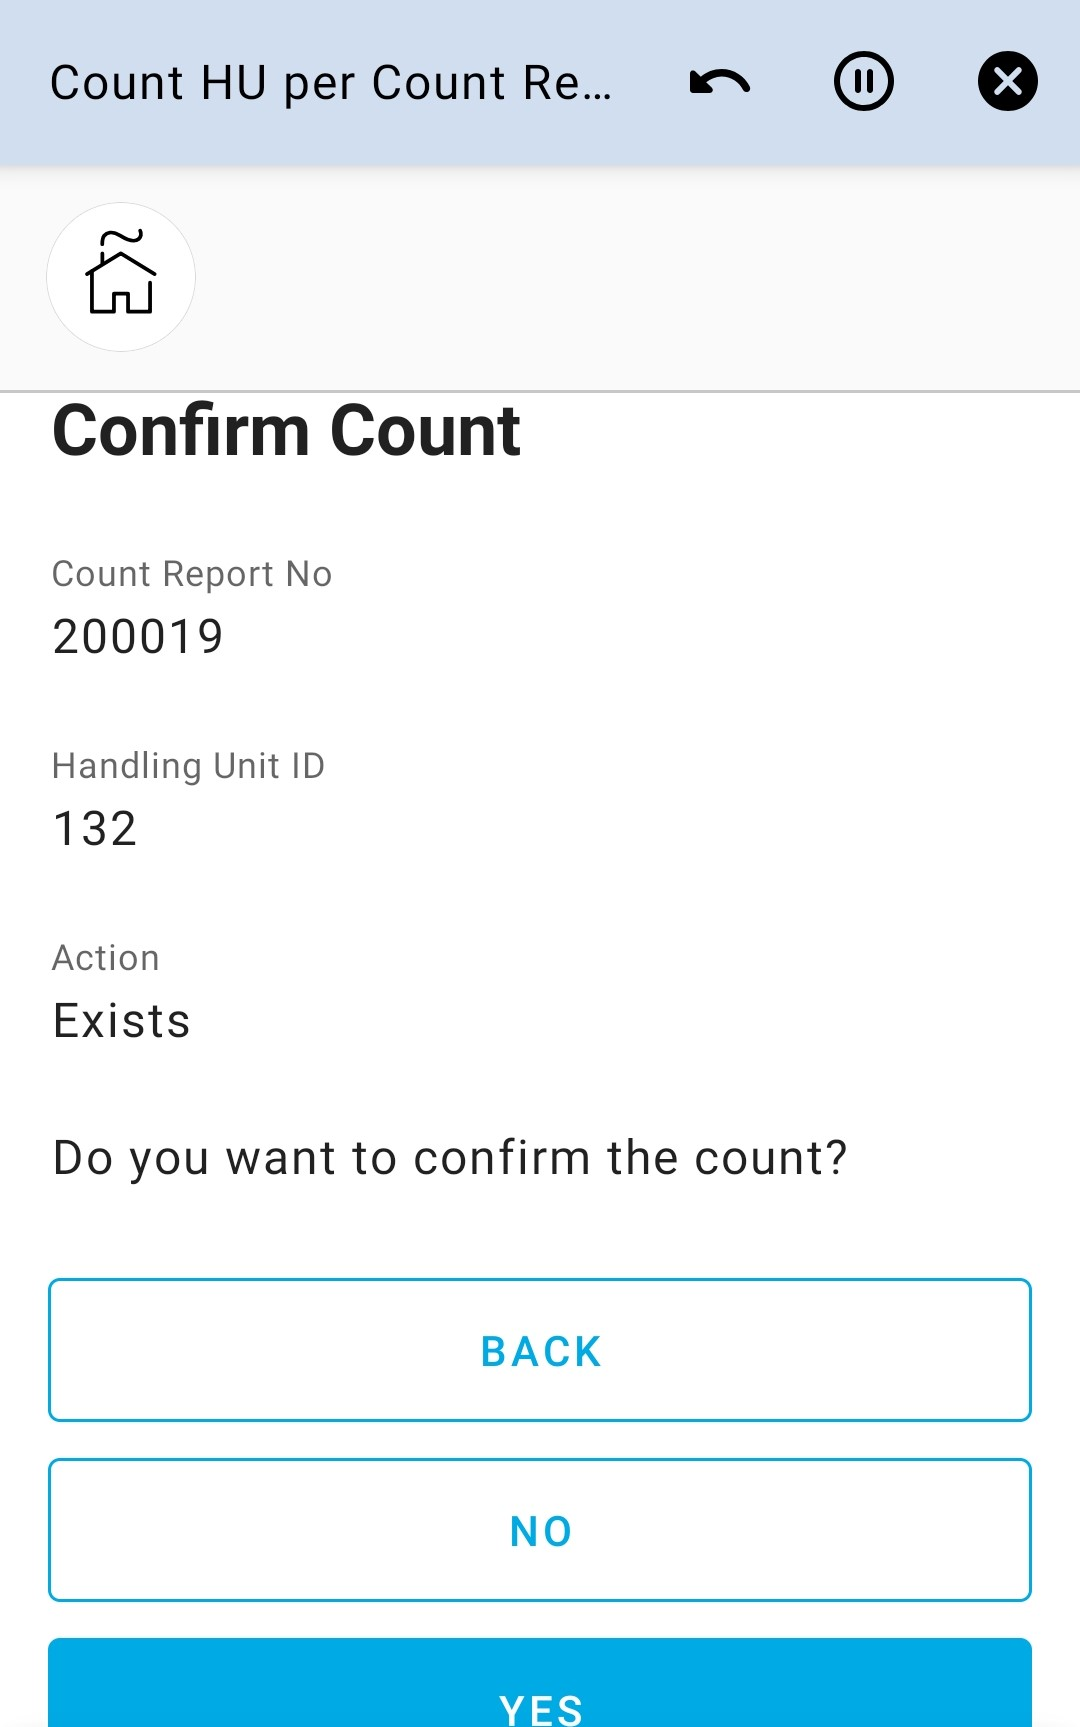 Confirm Count